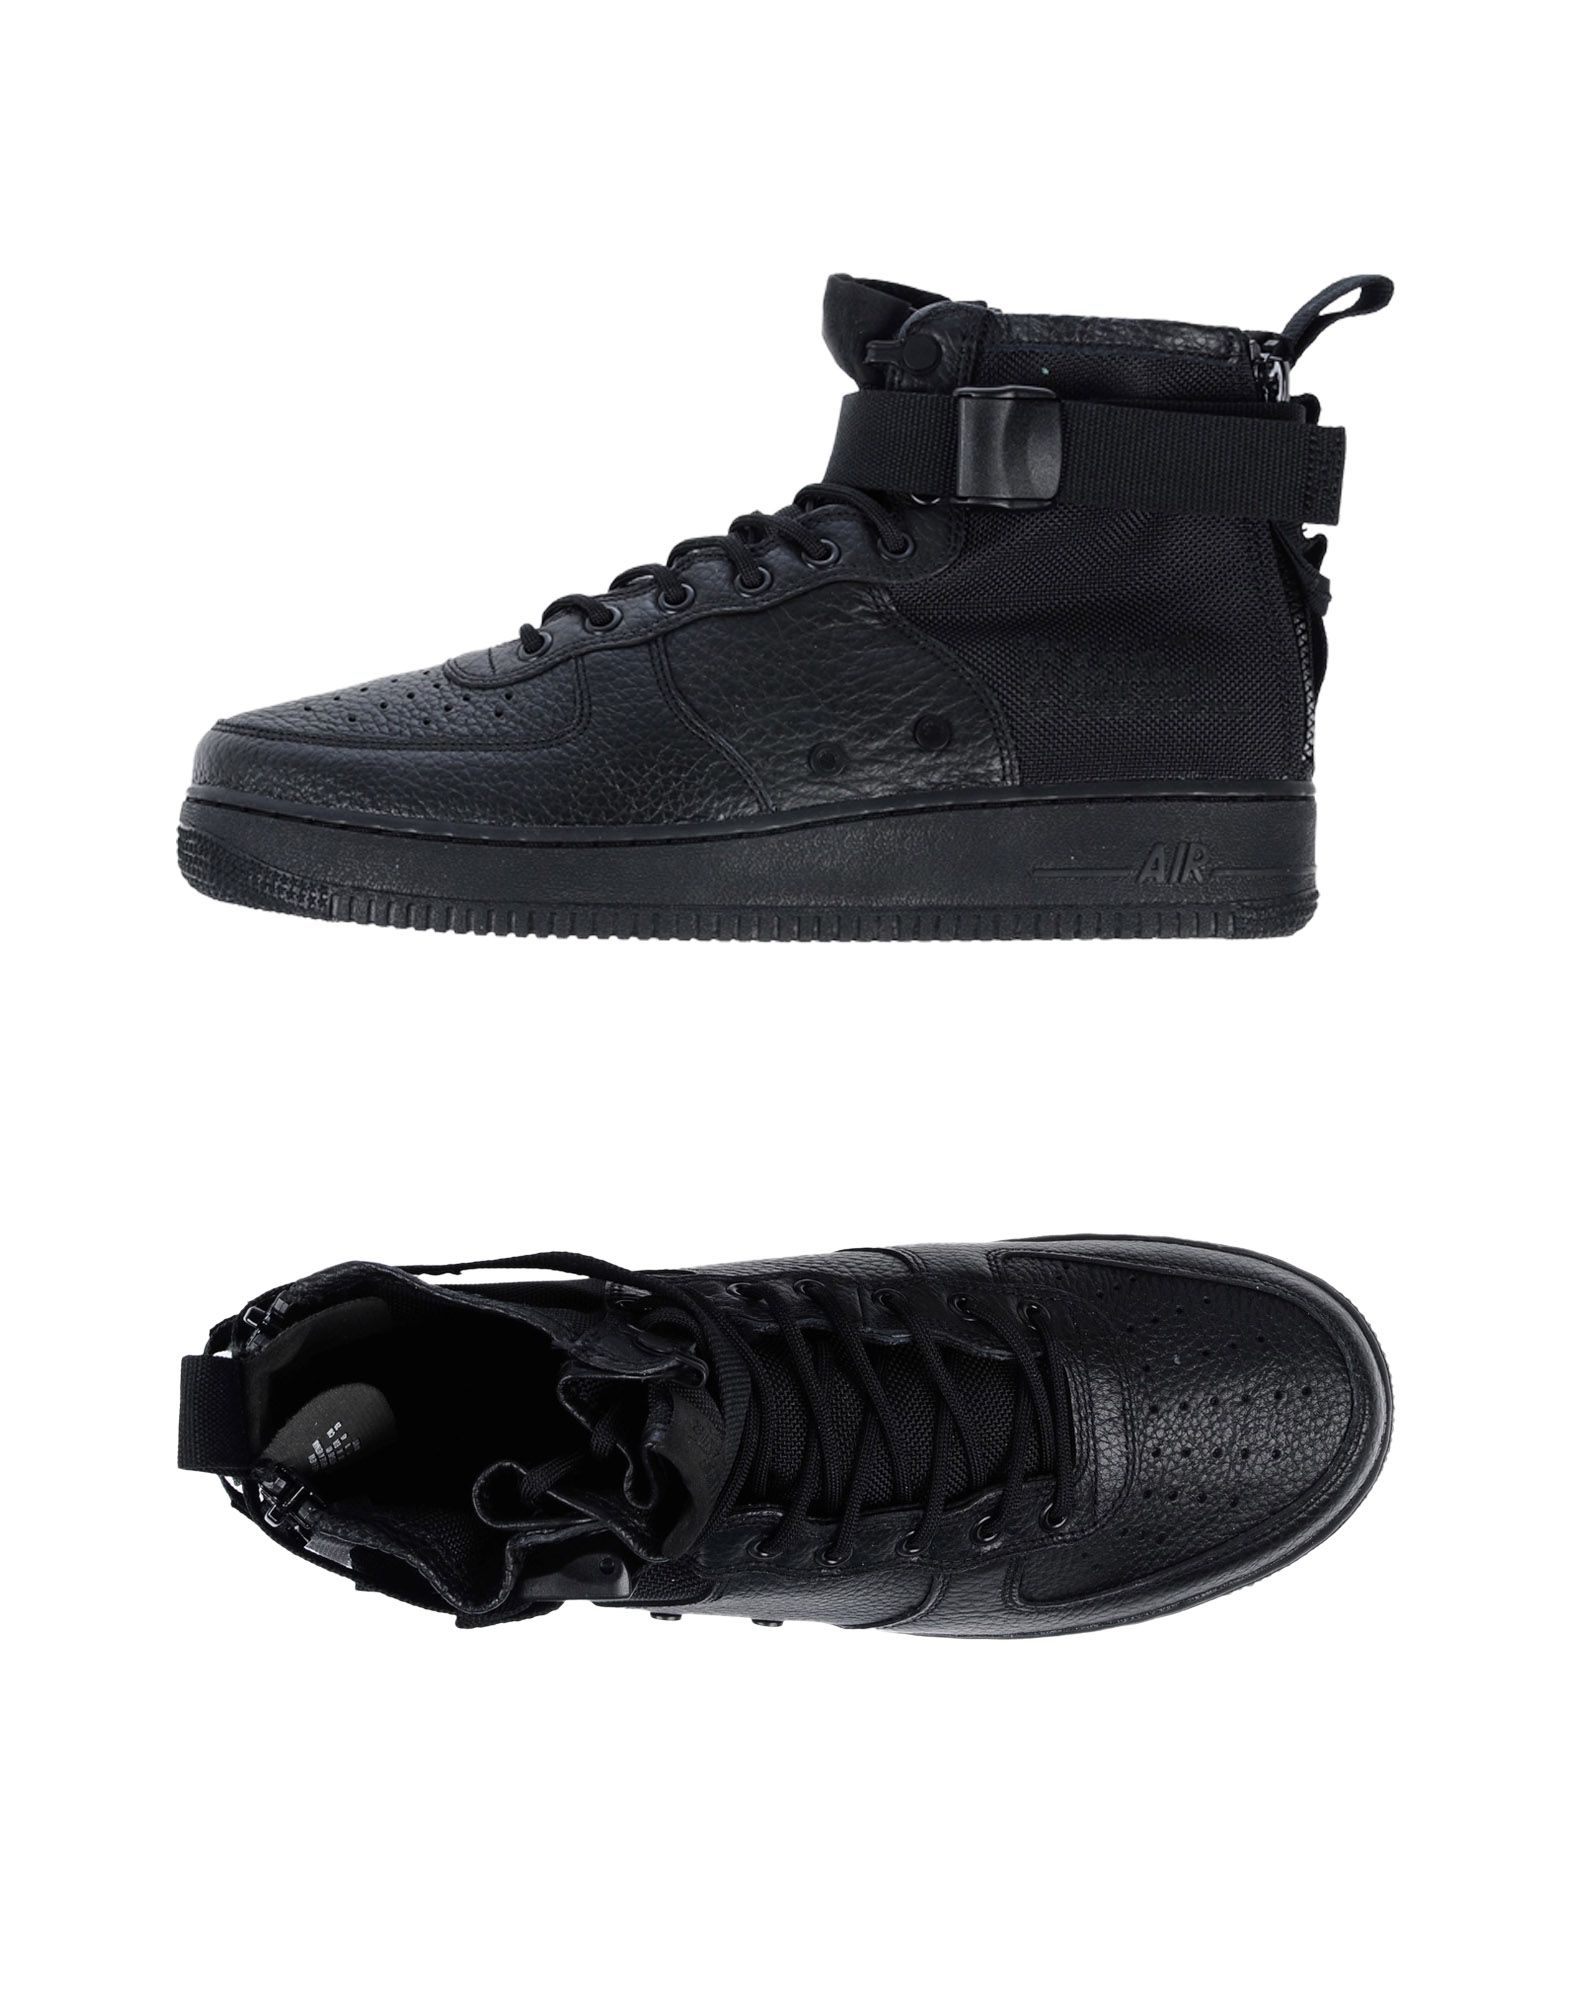 Sneakers Nike Sf Af1 Mid - Uomo - Acquista online su